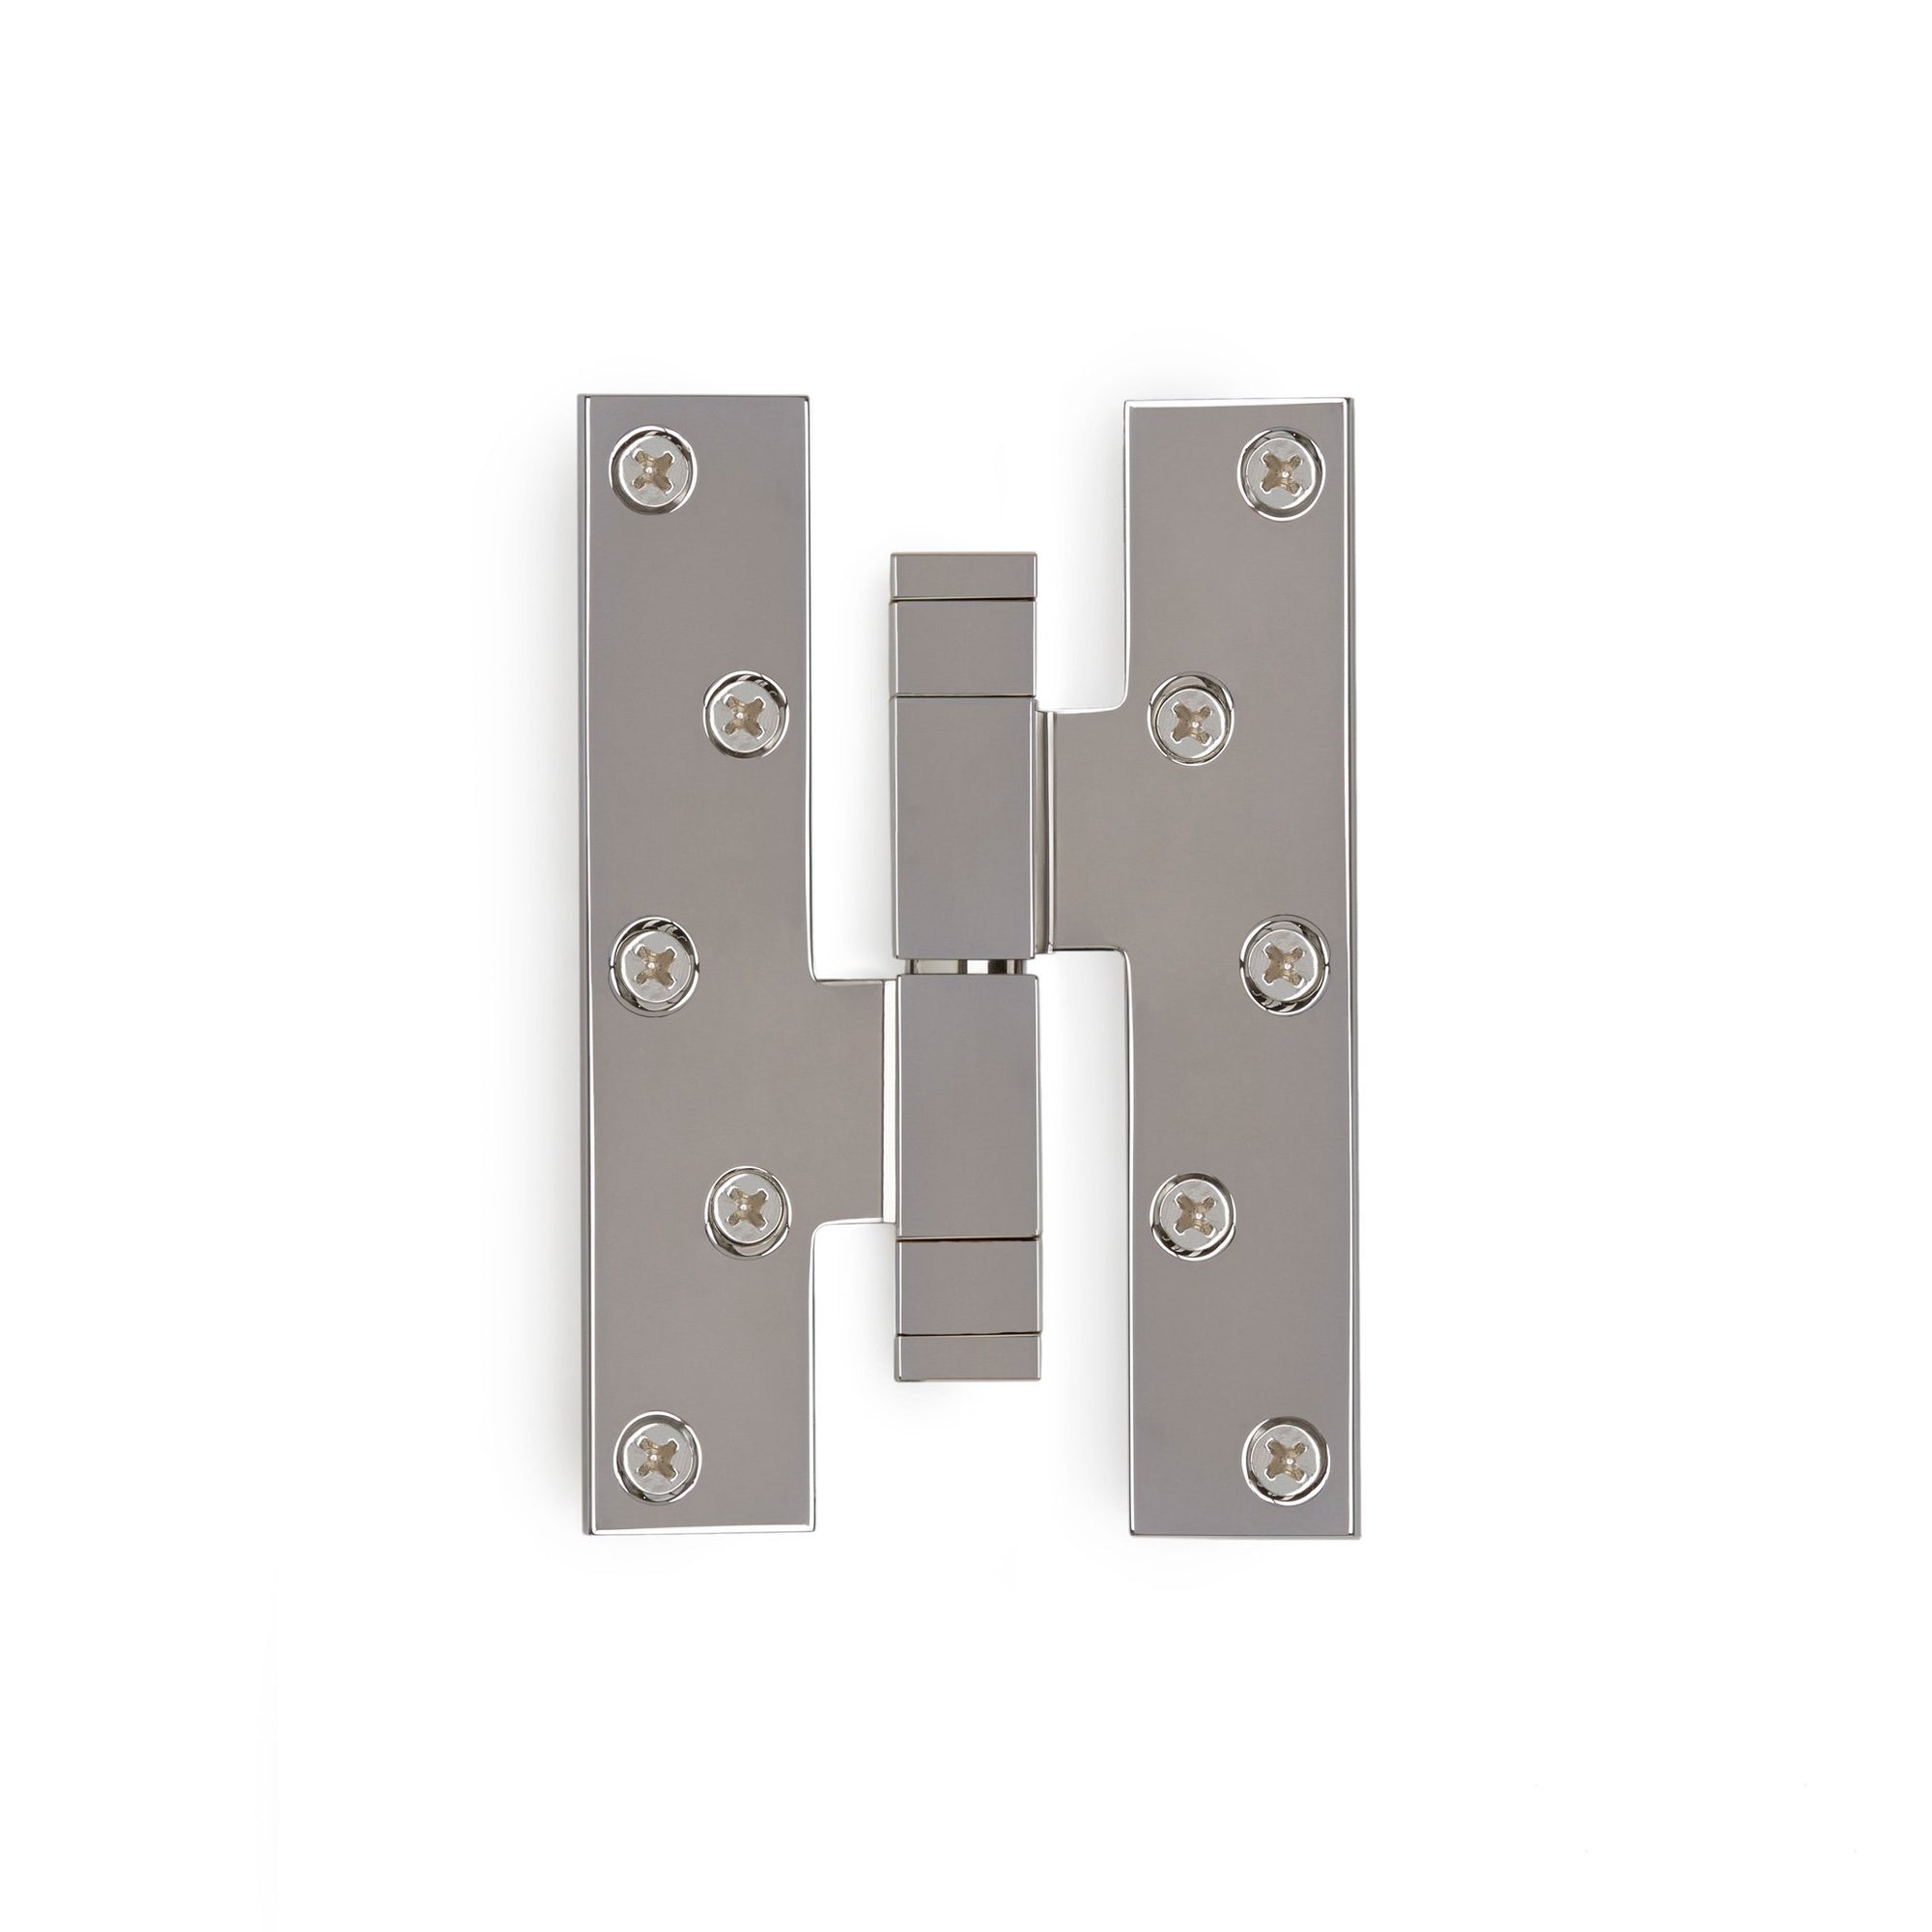 2002-HNGE-SQ-HD-ZZ-CP Sherle Wagner International Modern Square Paumelle Hinge in Polished Chromemetal finish